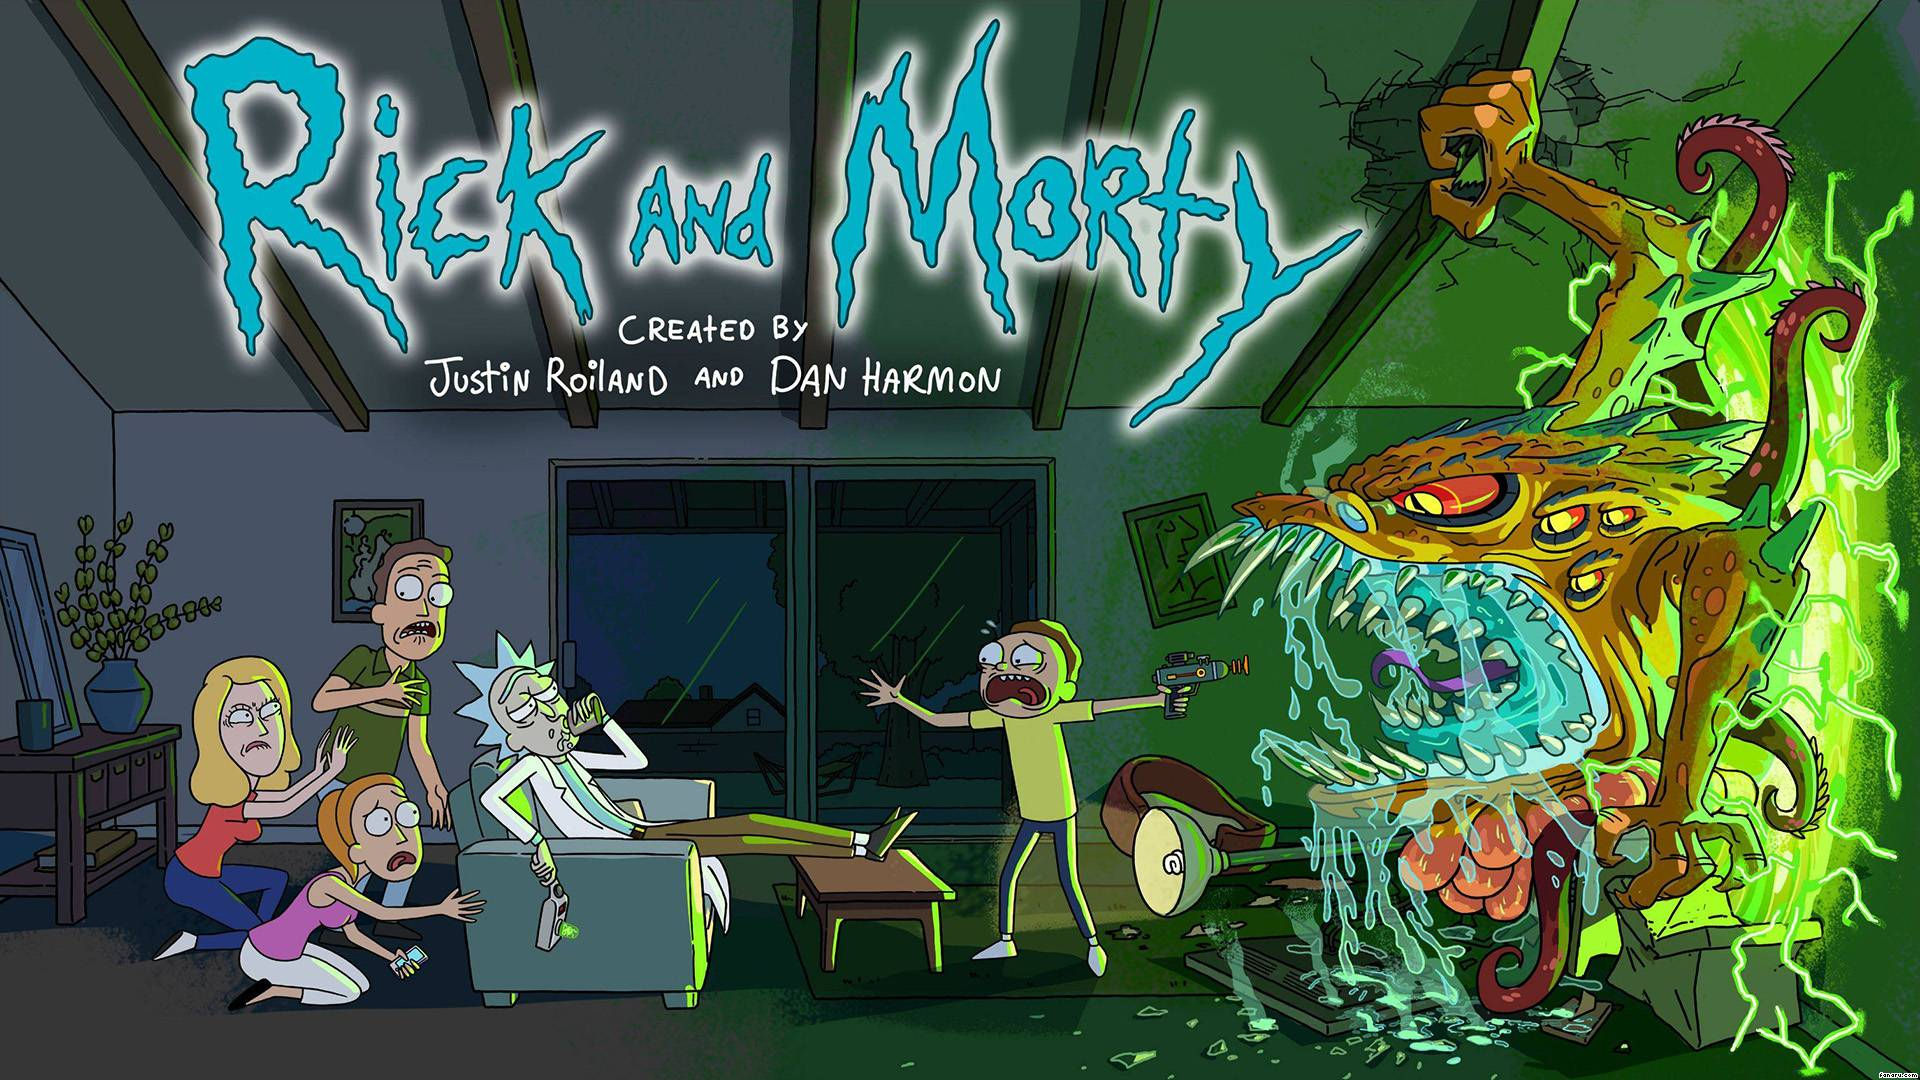 Rick and Morty Wallpapers   WallpaperVortex com Rick and Morty Res  1920x1080 HD   Size 326kb